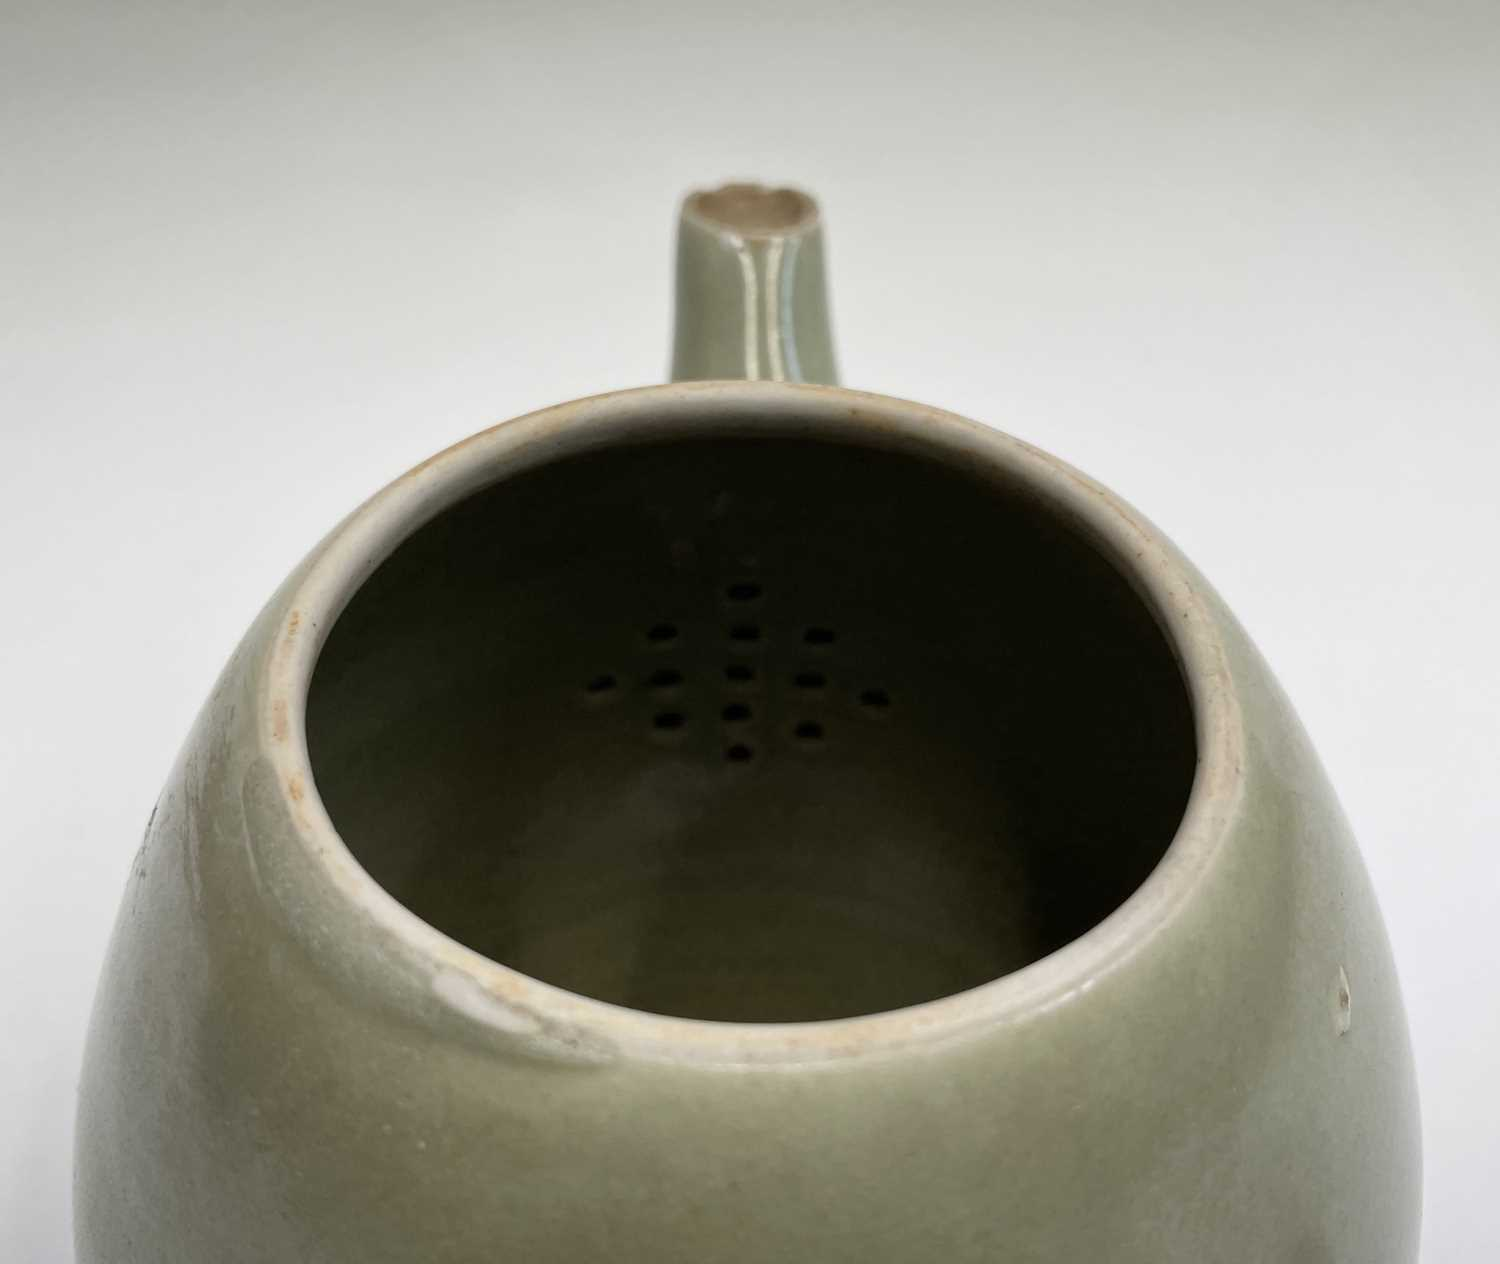 A Leach Pottery, St Ives, celadon glazed teapot, height 14cm, with impressed Leach seal and initials - Image 11 of 11